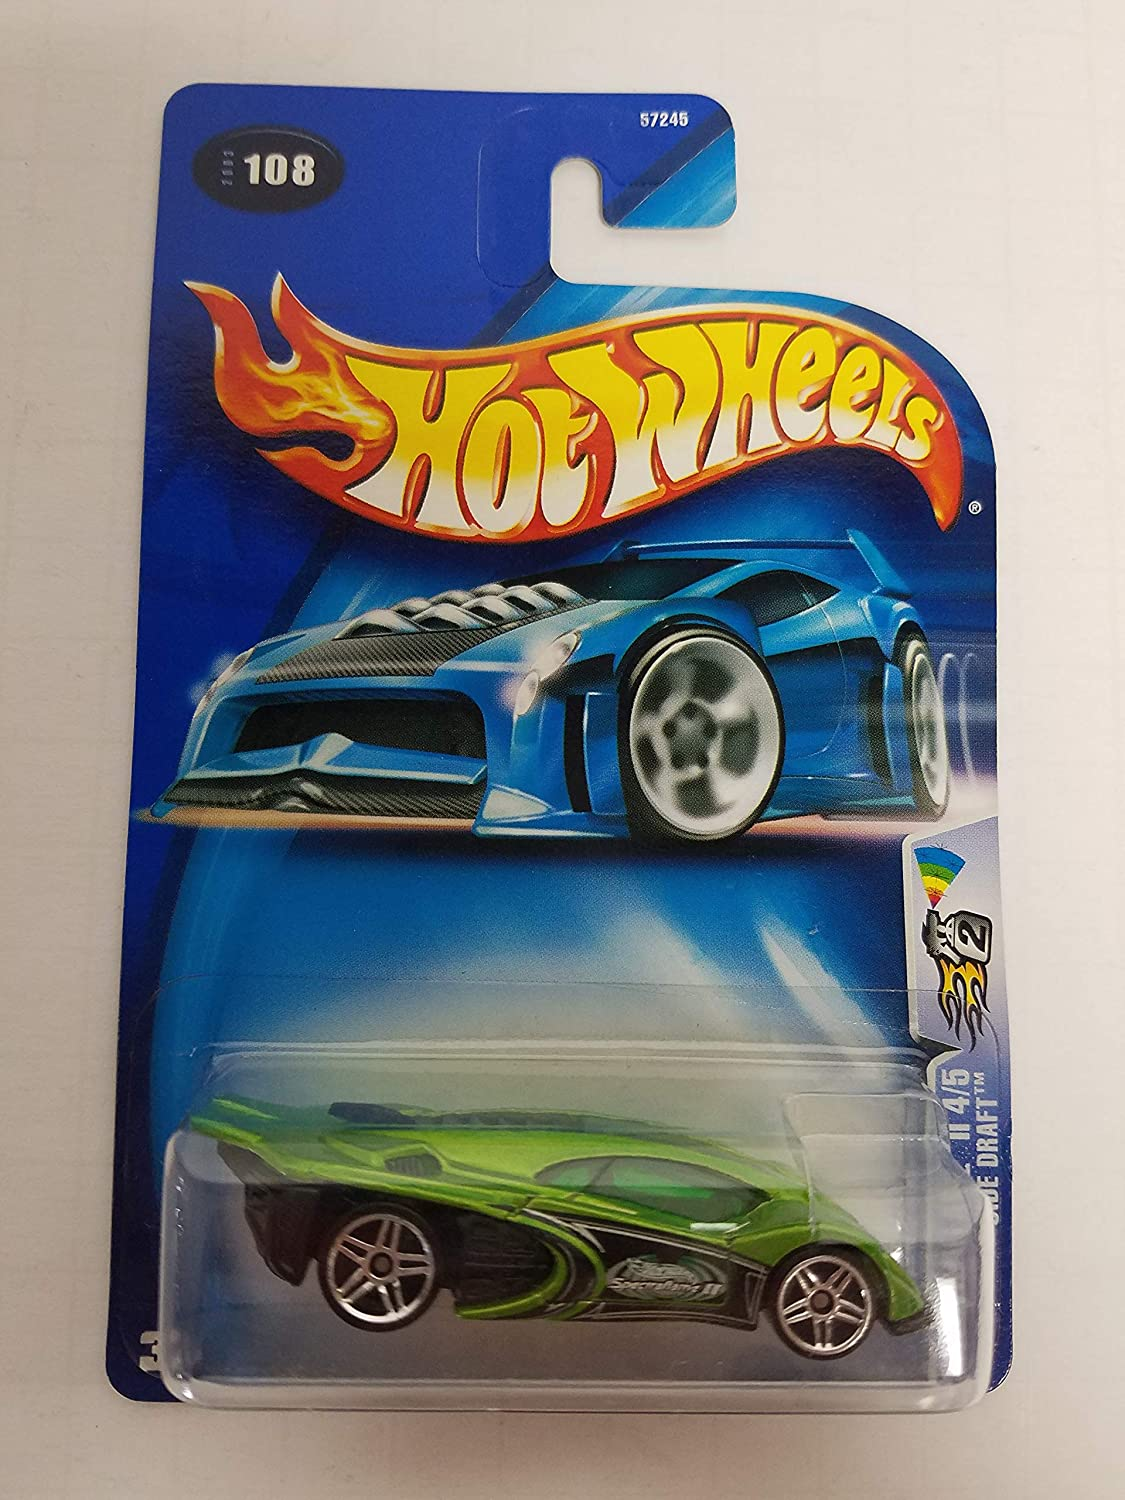 Side Draft Spectraflame II 4/5 2003 Hot Wheels No. 108